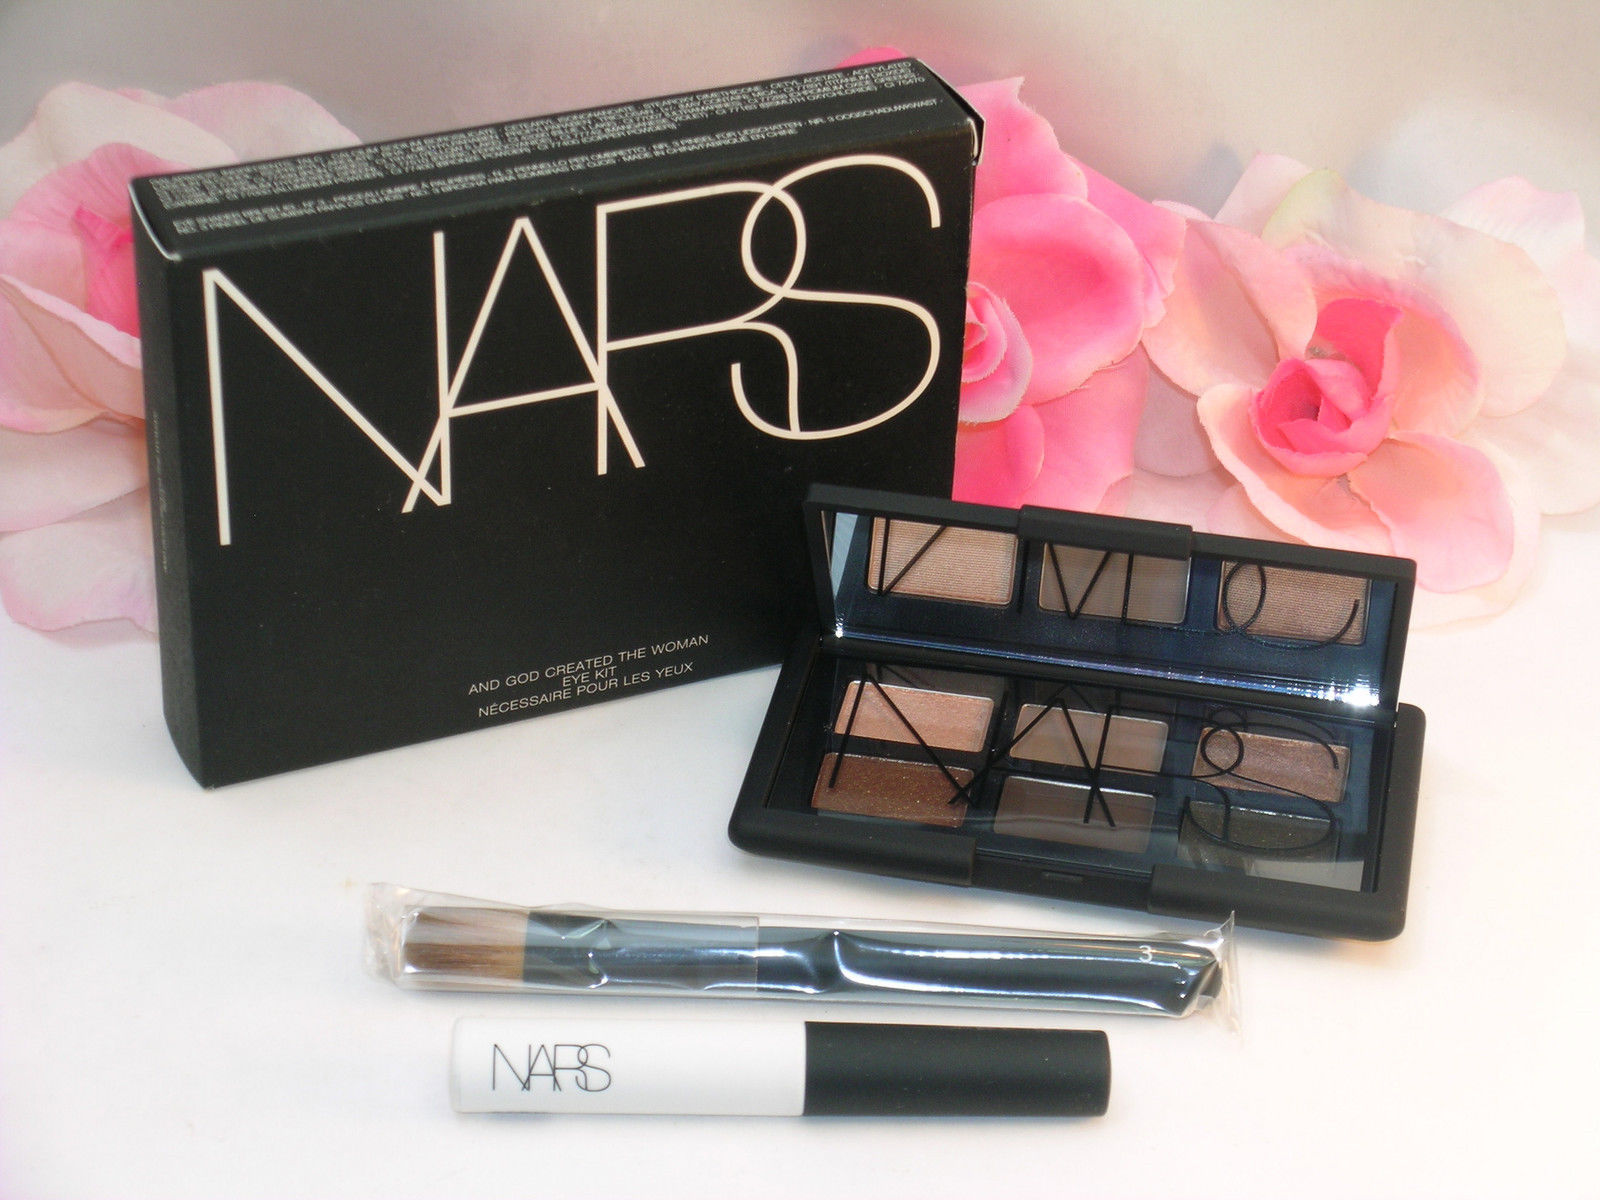 Primary image for New NARS Eye Shadow Kit # 9971 6 Shades Pro Prime & Brush And God Created Woman